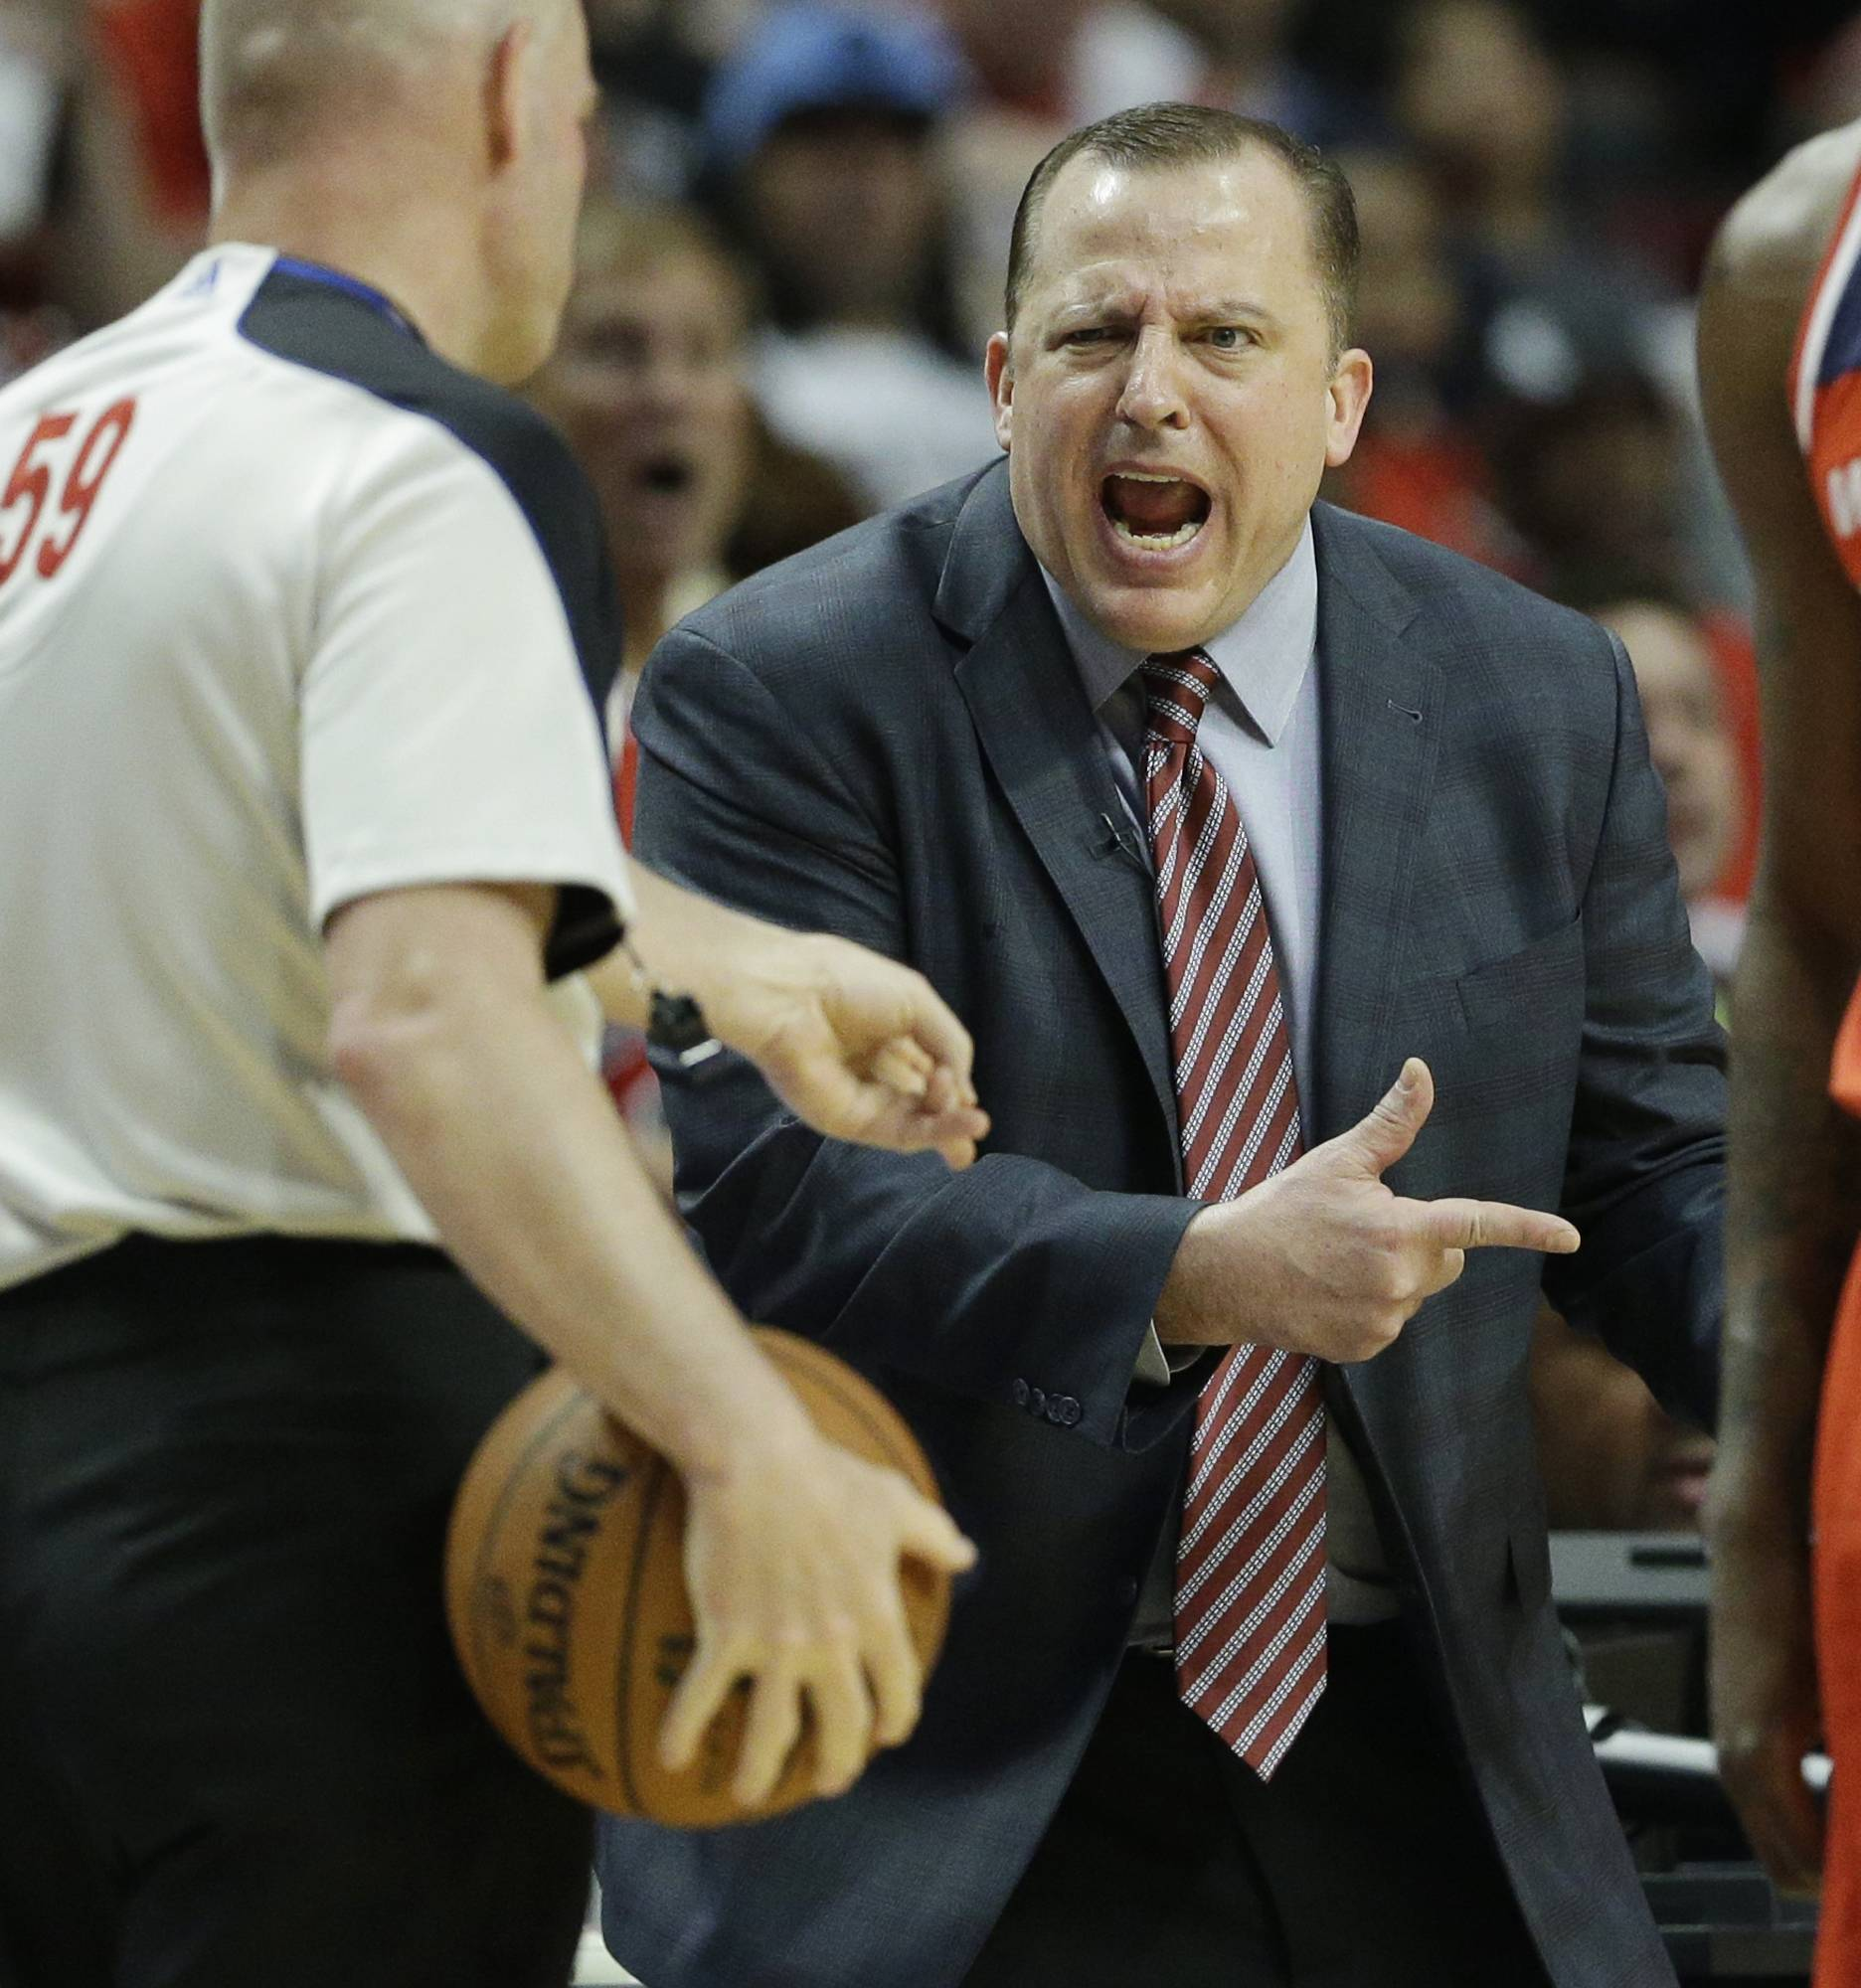 Bulls coach Tom Thibodeau reacts to a call during the second half in Game 1 of an opening-round playoff series against the Washington Wizards on Sunday night at the United Center. The Wizards won 102-93.